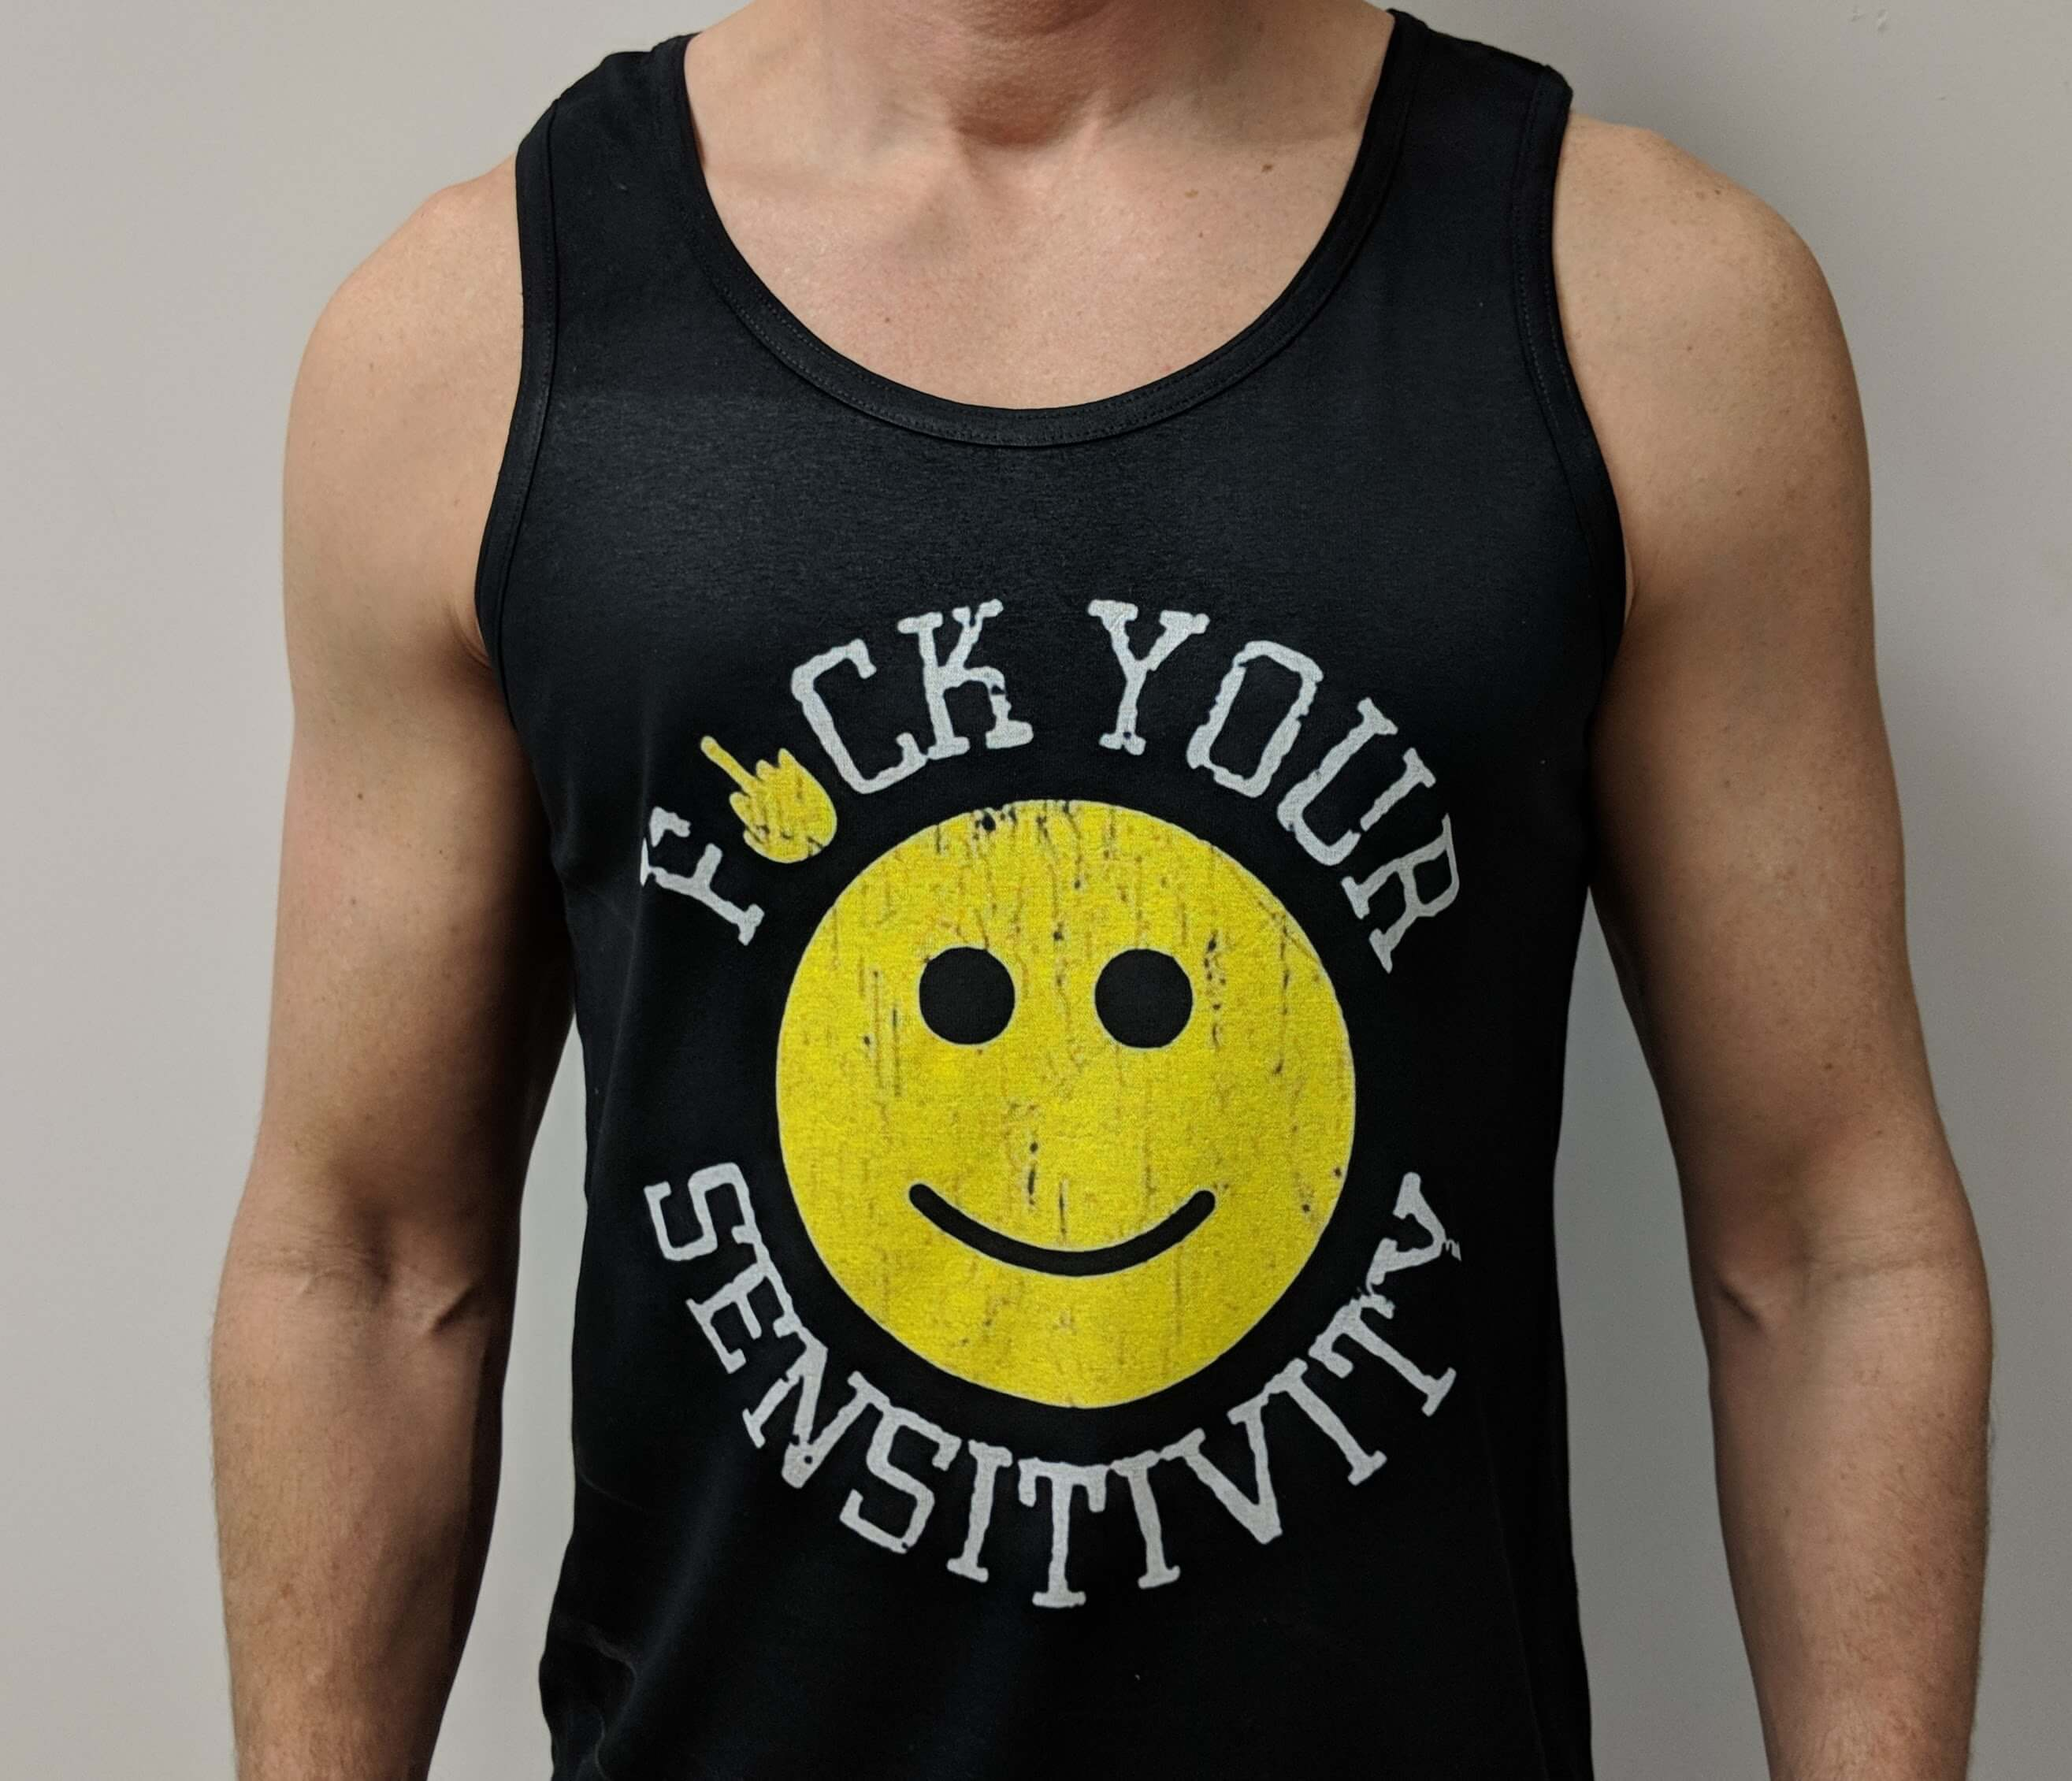 fuck-your-sensitivity-t-shirt.jpg